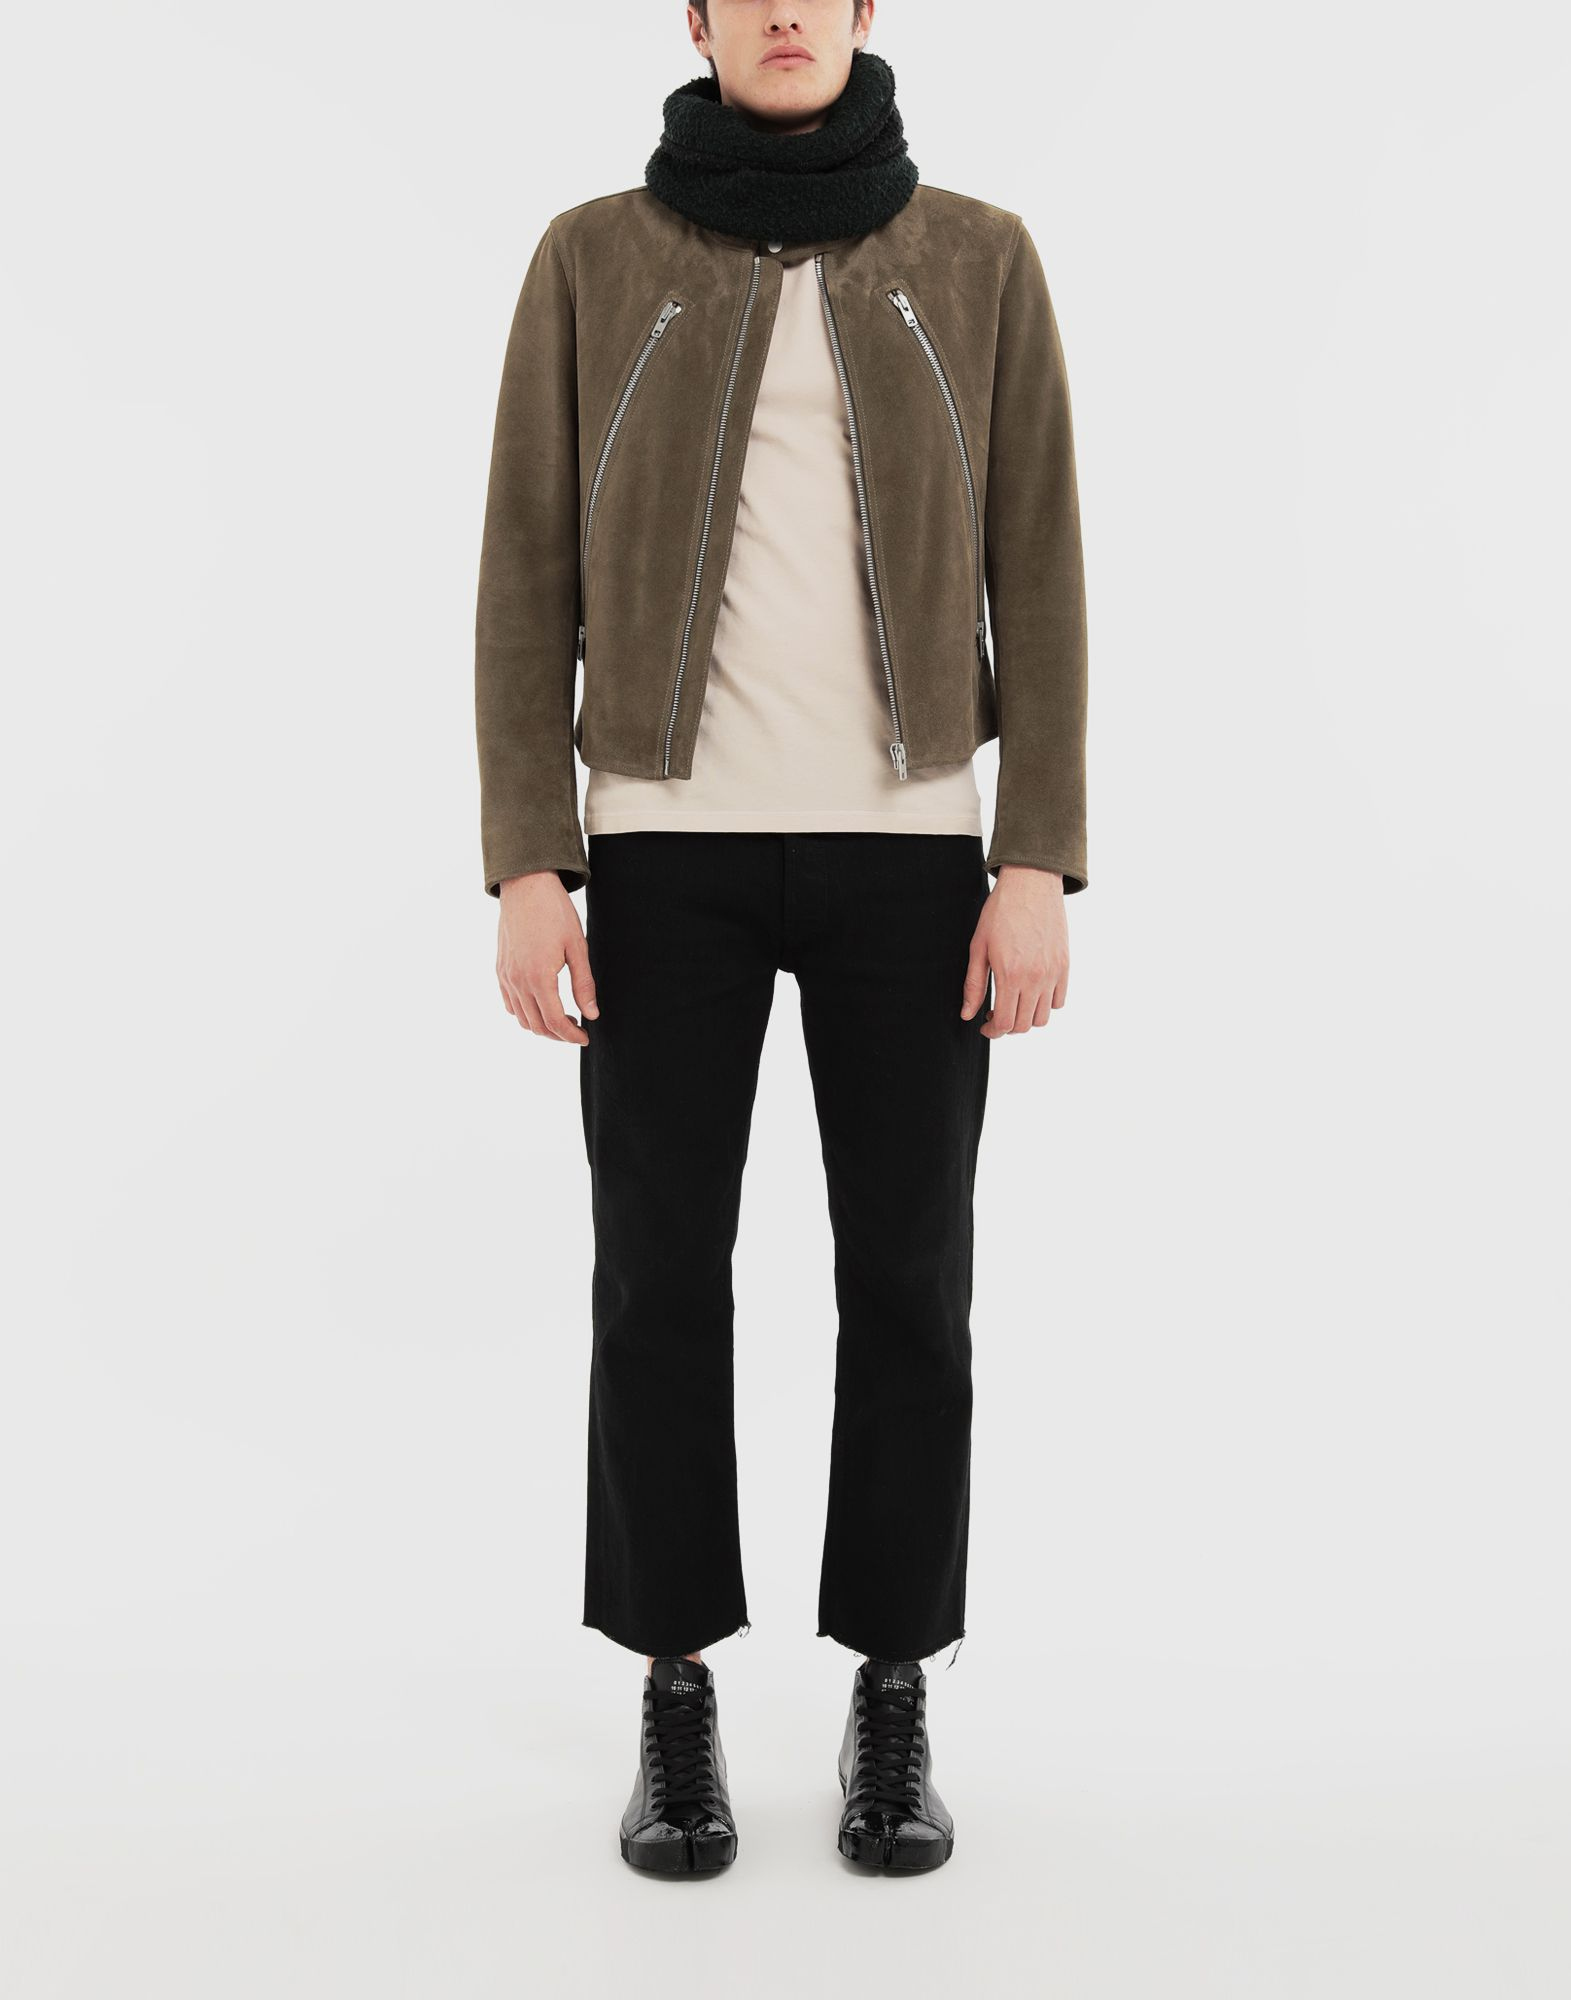 MAISON MARGIELA Leather jacket Leather Jacket Man d